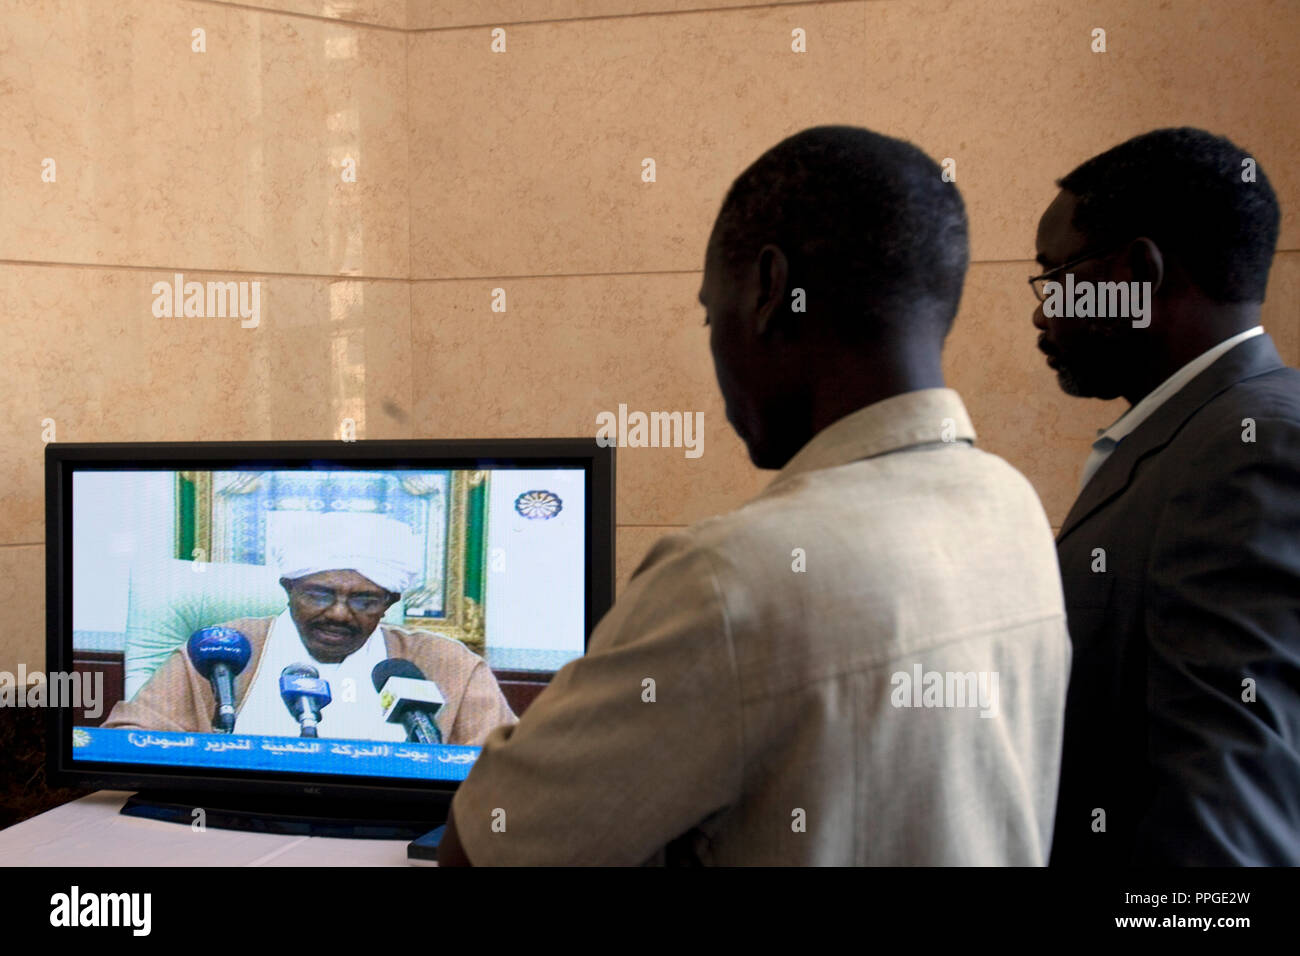 26 april 2010 - Friendship Hall Theatre, Karthoum, Sudan – Sudanese men follow a televised speech from Sudanese President Omar al-Bashir in Khartoum. Bashir appeared on state television soon after the result saying the Sudanese people 'have achieved this moral victory before the eyes of the world in a civilised, high class and shared manner'. Sudan's president Omar al-Bashir won another term in office Monday, according to election officials, with a comfortable majority (68 percent of the vote ) in elections marred by boycotts and fraud allegations, becoming the first leader to be elected while - Stock Image